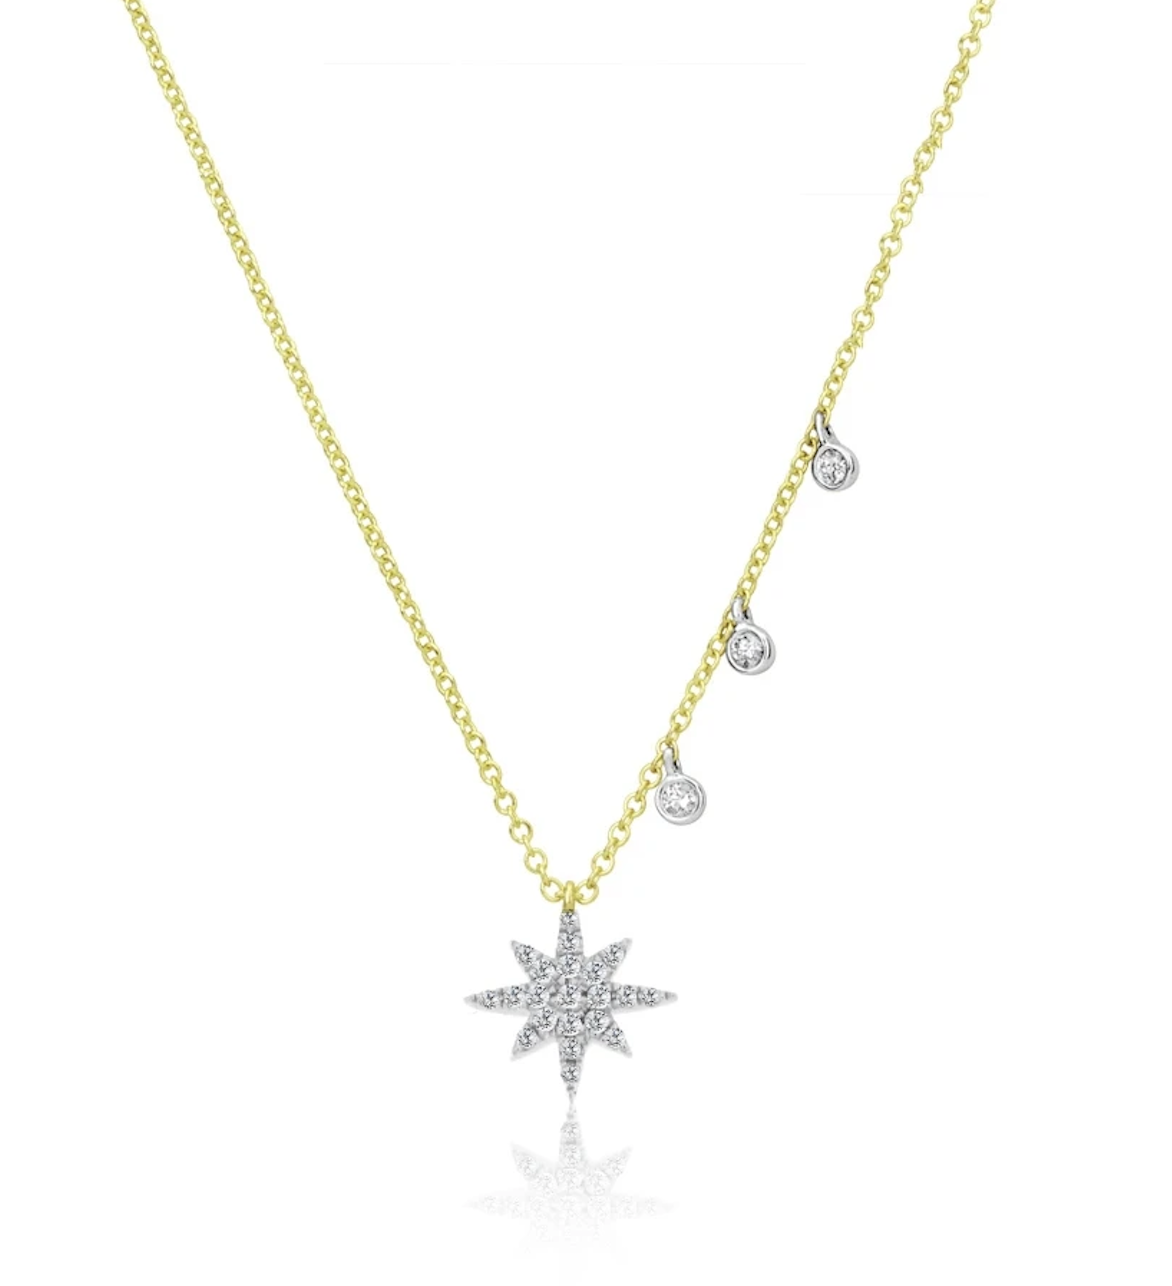 Dainty Diamond Starburst Necklace